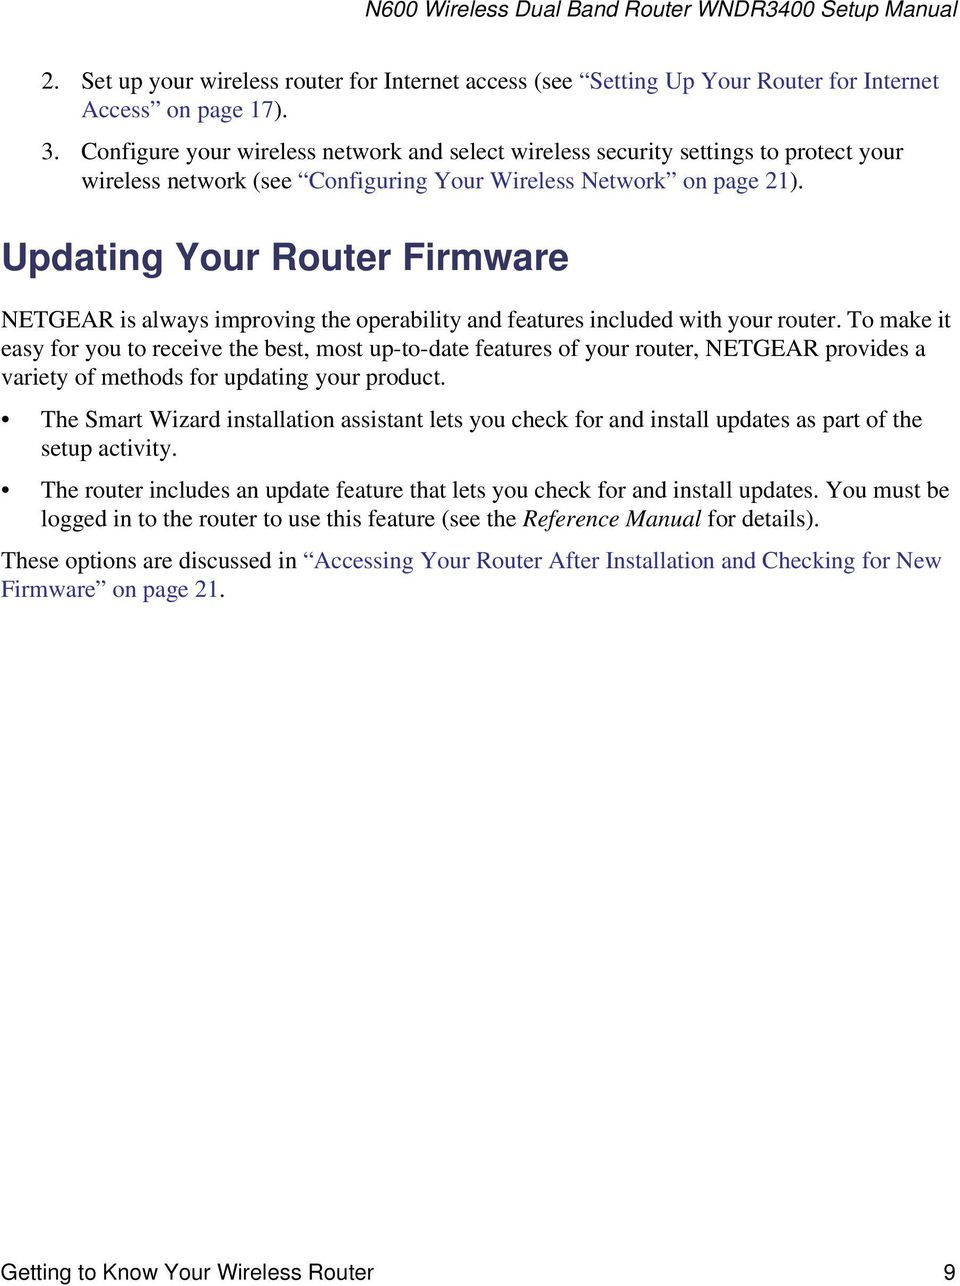 Updating Your Router Firmware NETGEAR is always improving the operability and features included with your router.